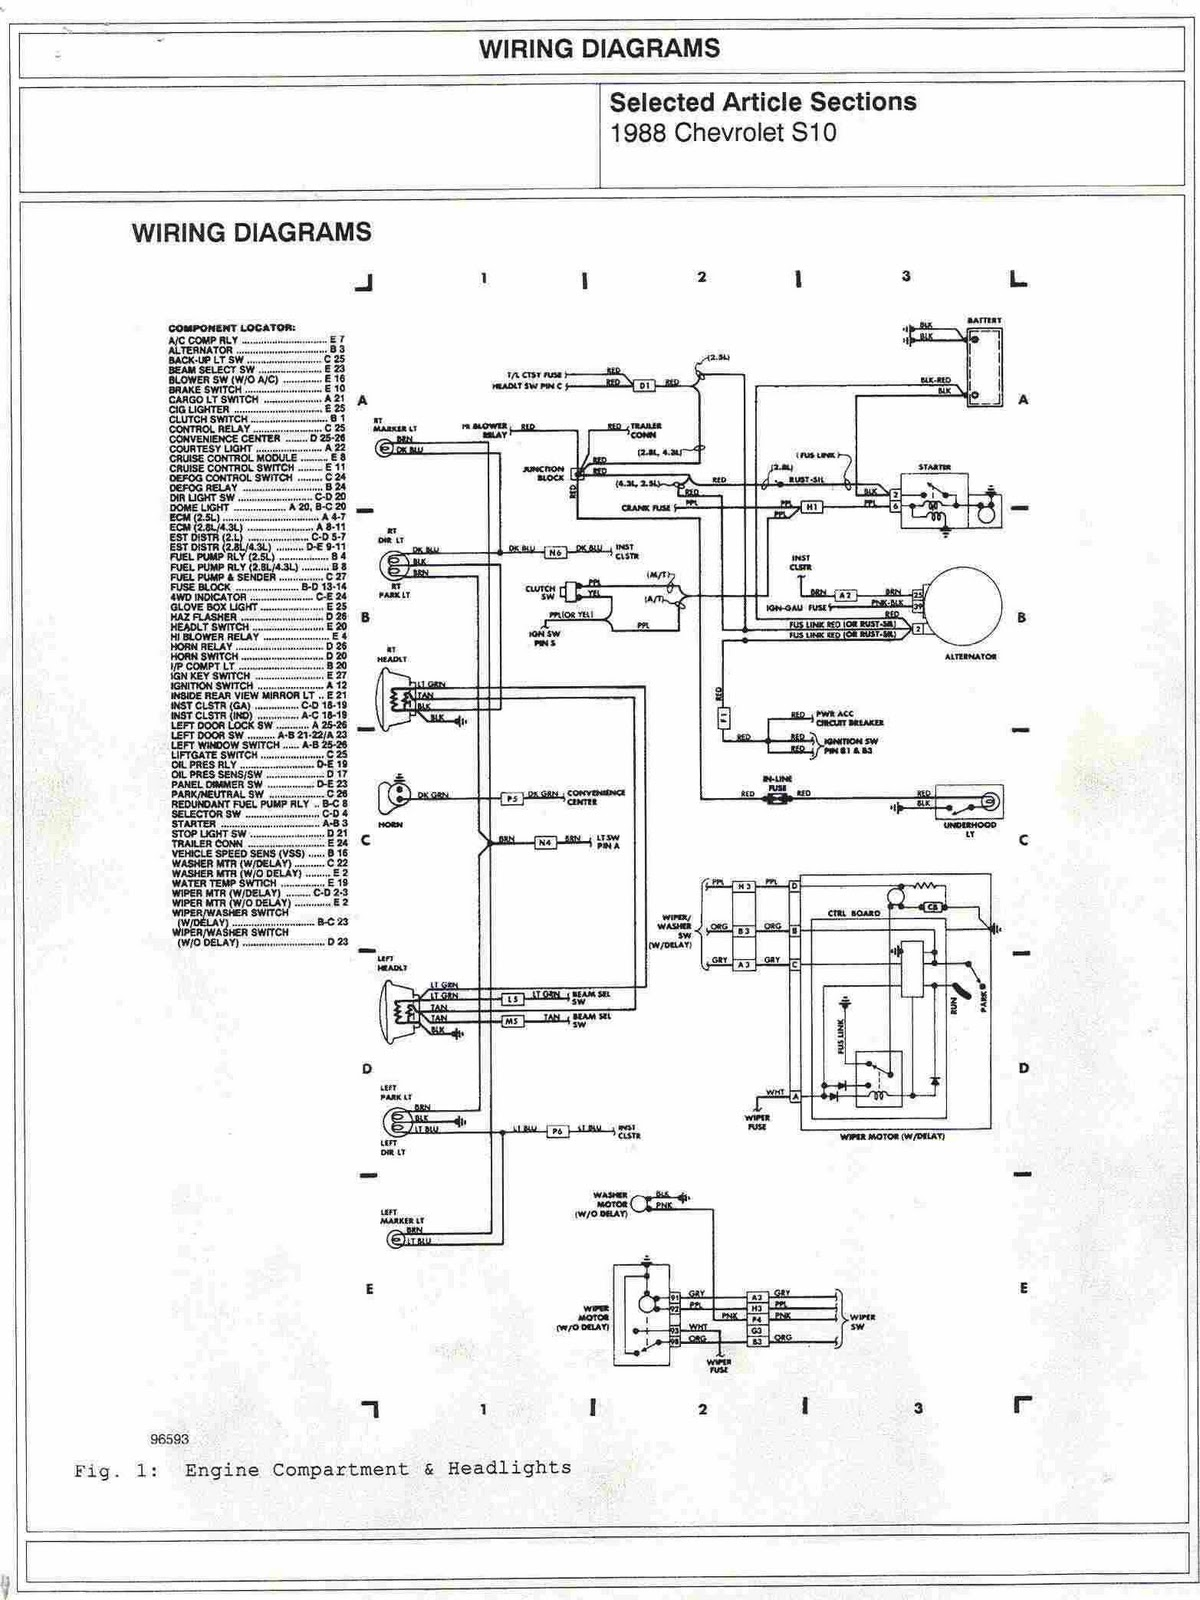 1988+Chevrolet+S10+Engine+Compartment+and+Headlights+Wiring+Diagrams 95 s10 wiring diagram 95 tahoe wiring diagram \u2022 wiring diagrams 2006 Dodge Ram Tail Light Wiring Diagram at reclaimingppi.co